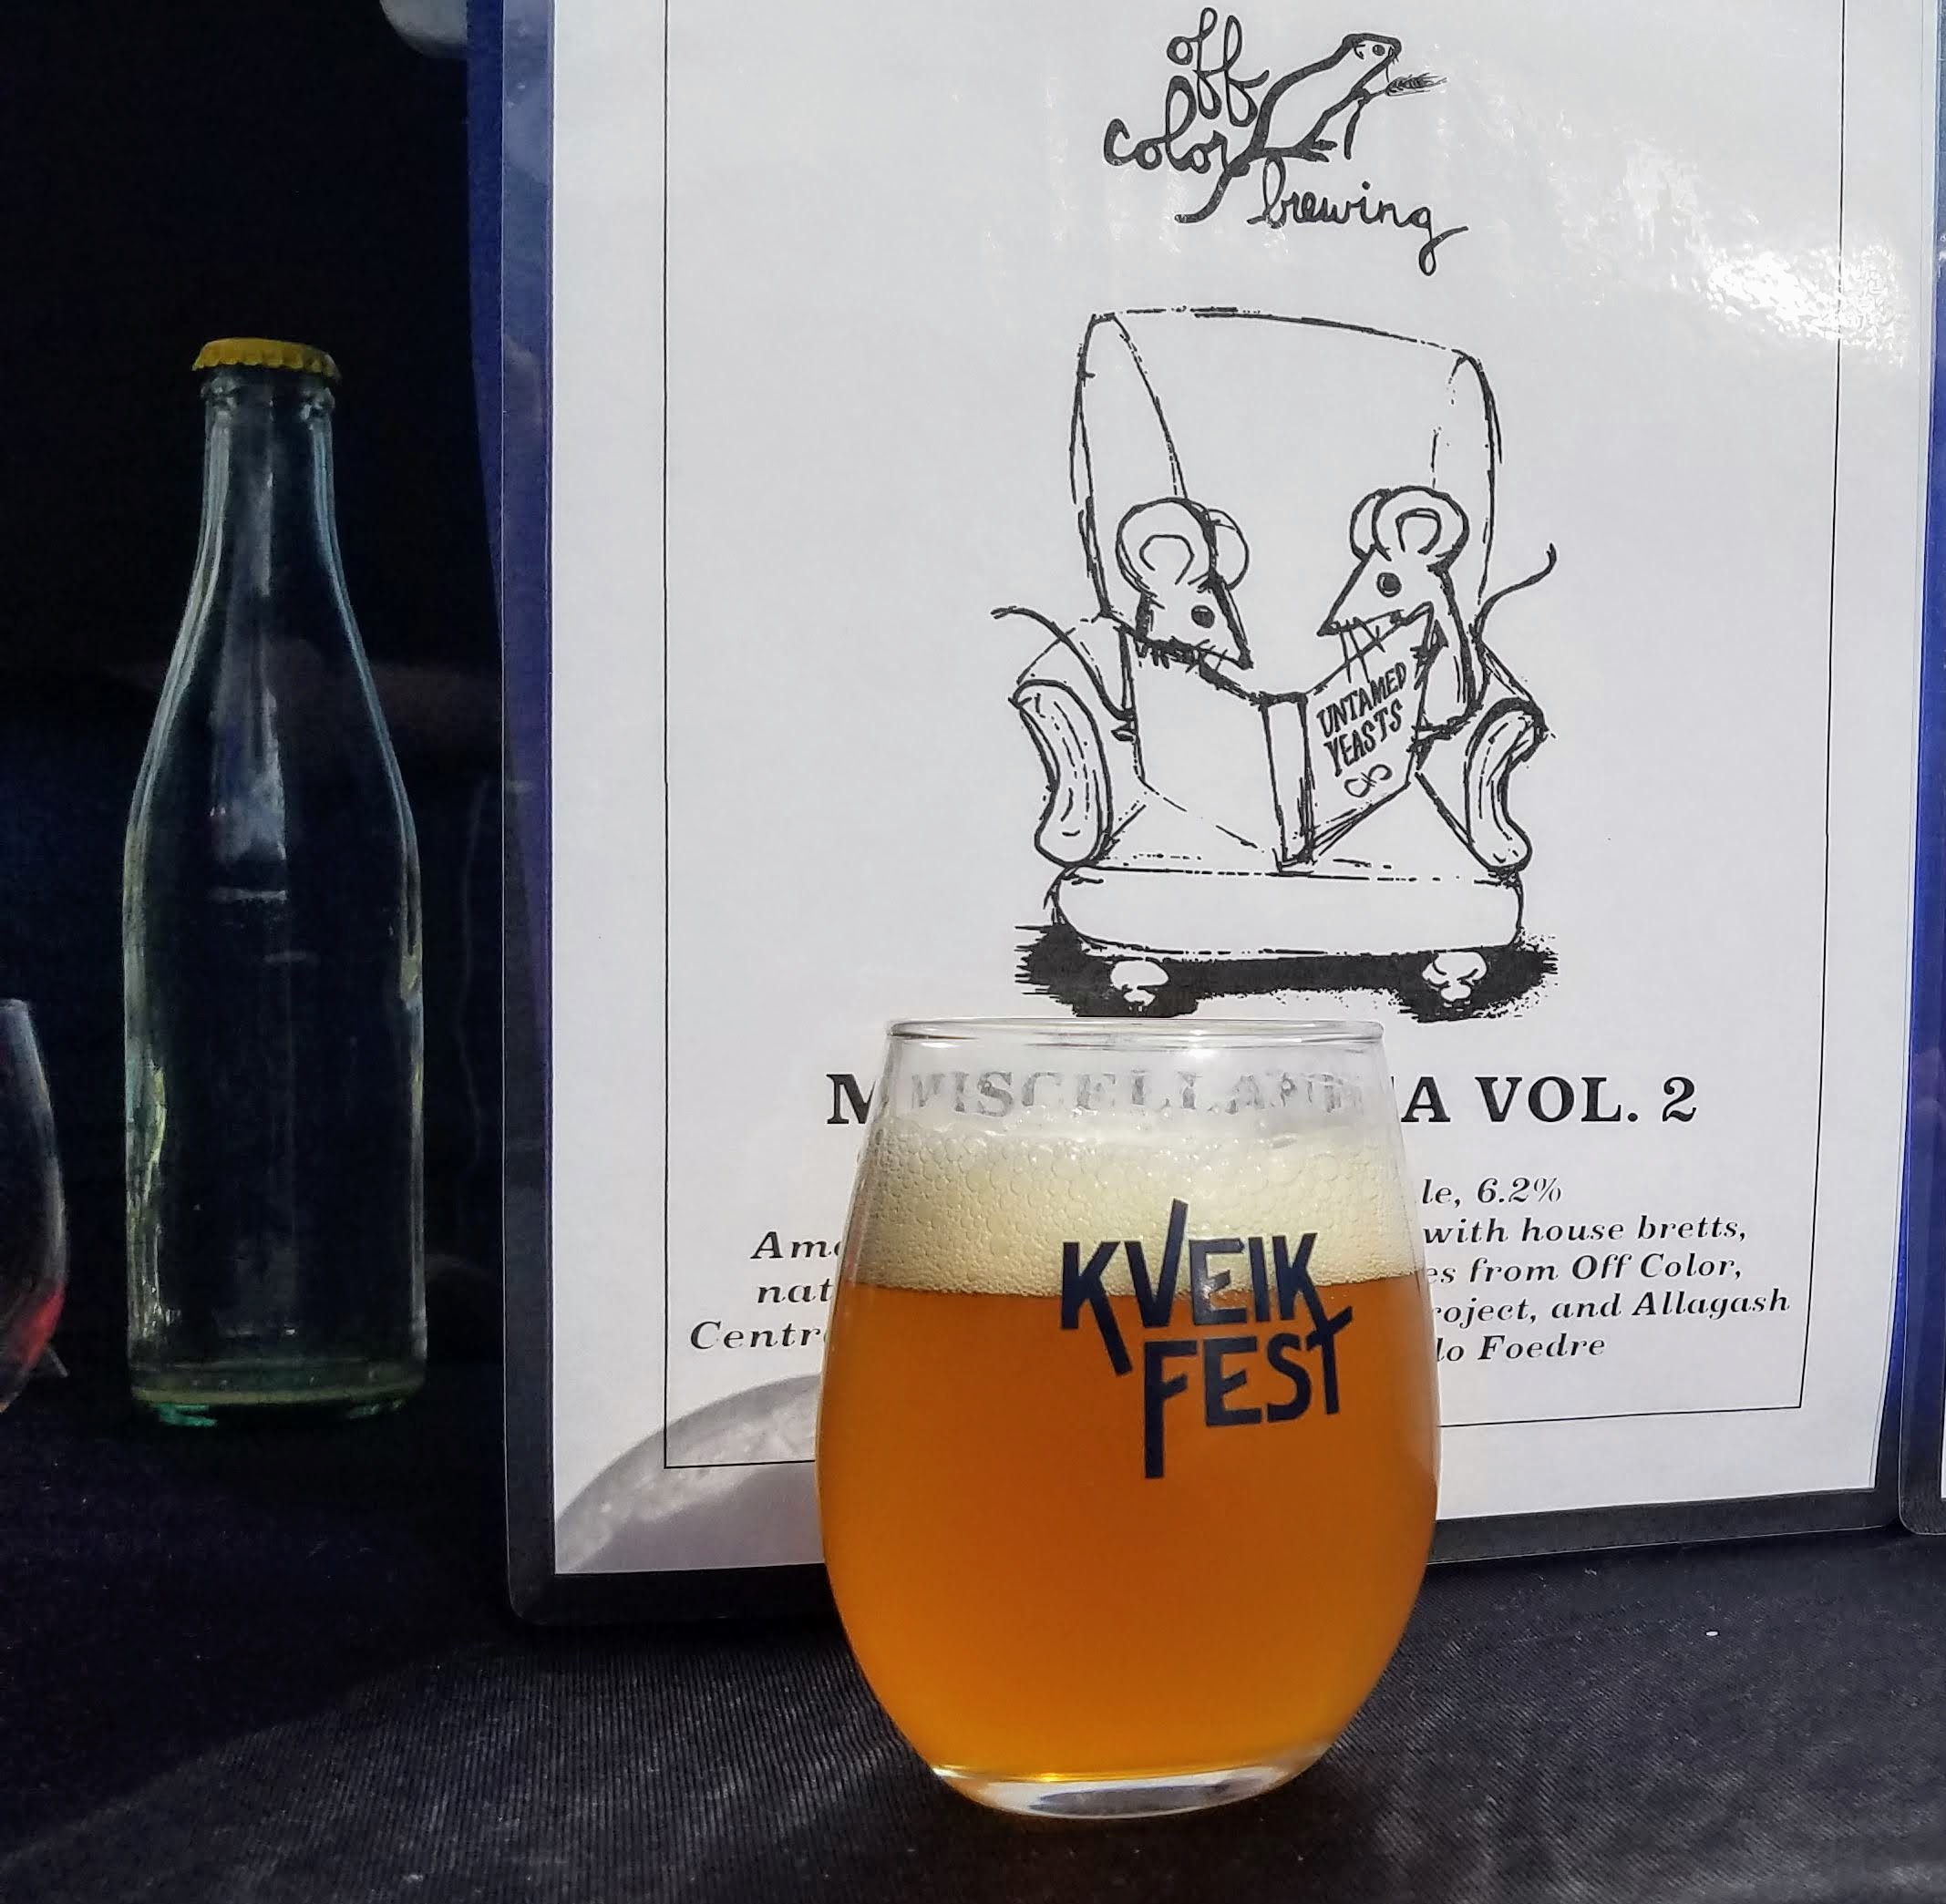 Off Color Miscellanea Vol. 2 at Kveik Fest District Brew Yards